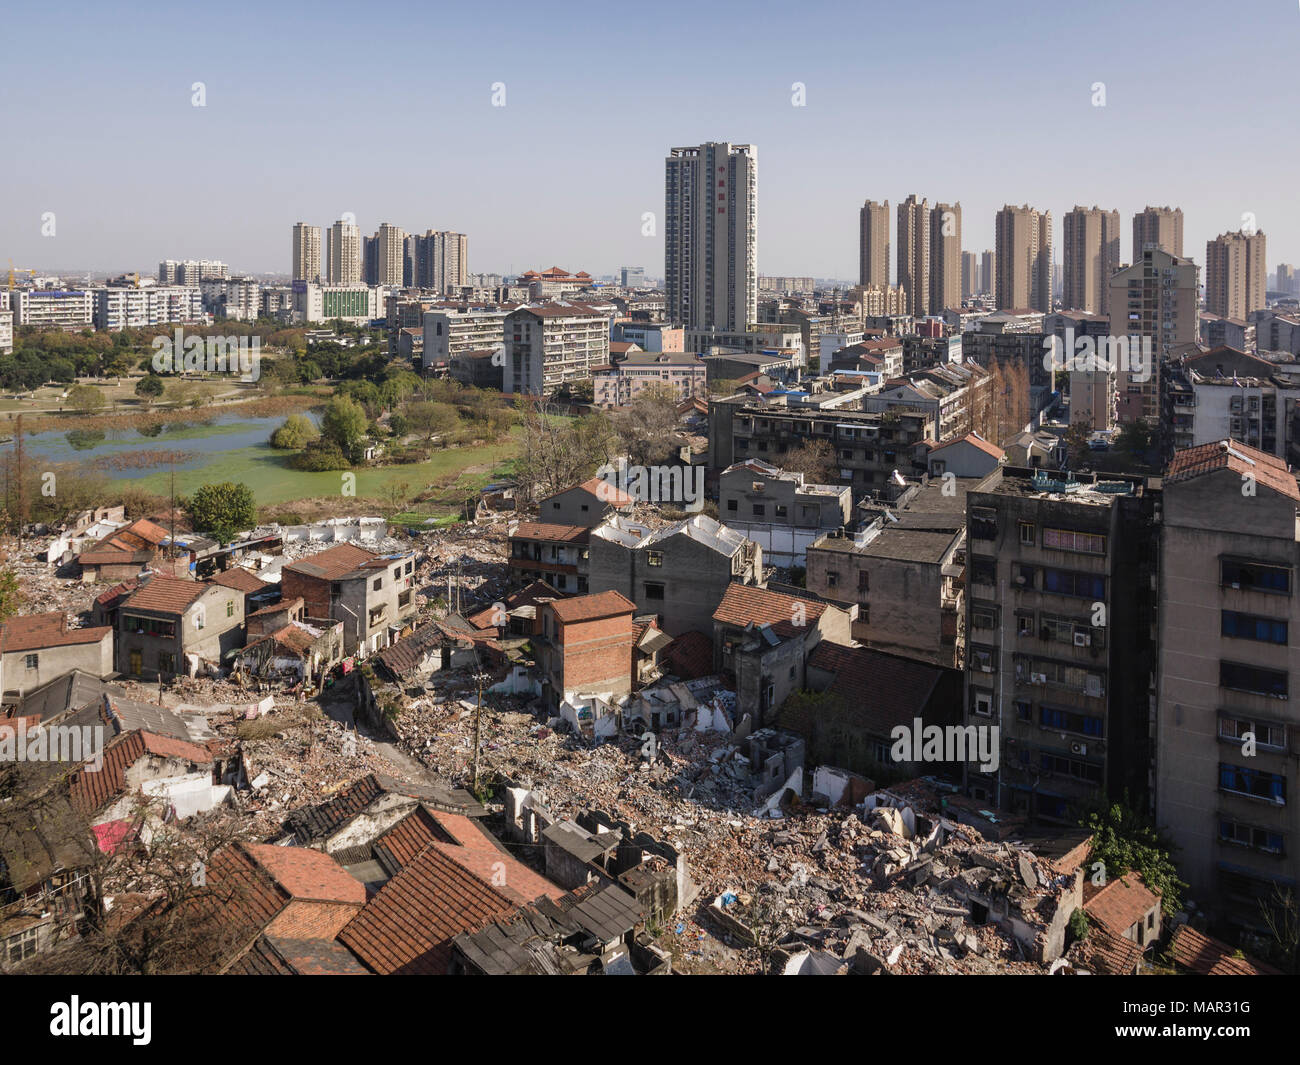 Tall buildings rise behind torn down old apartment buildings, Jingzhou, Hubei, China, Asia - Stock Image